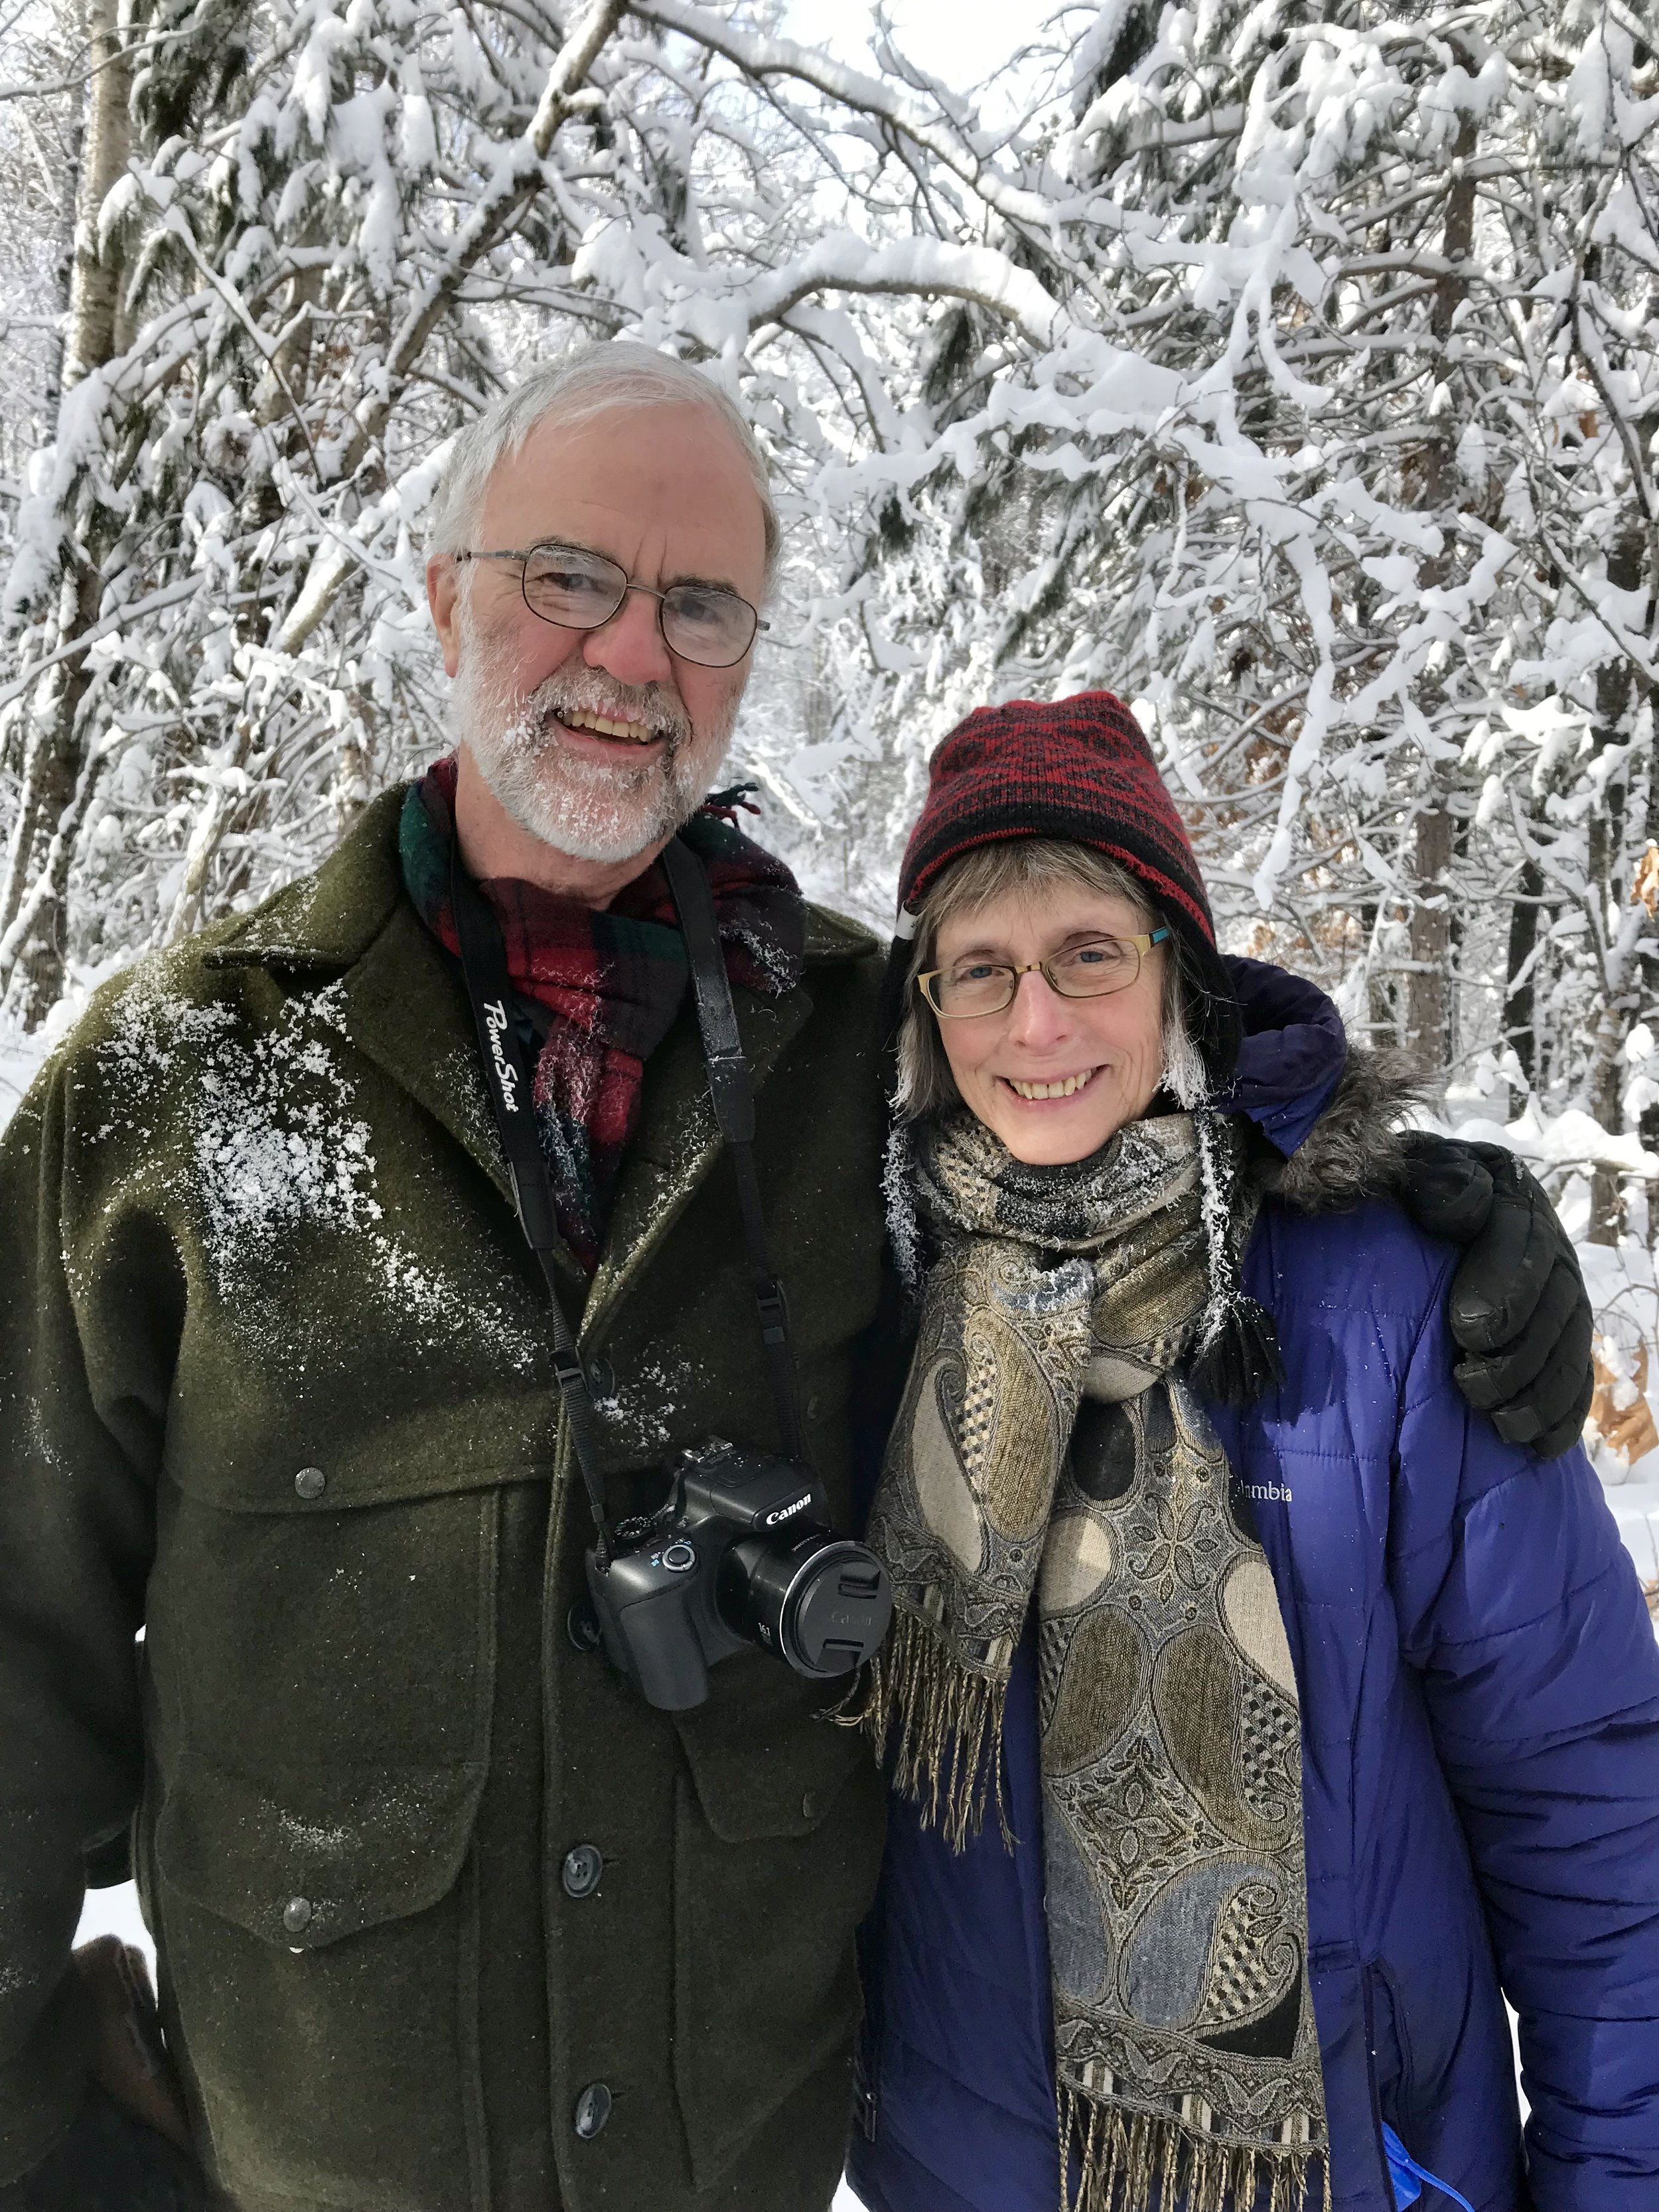 I share my writing, digging-in-the-dirt life with Dave, daredevil snowshoer. -